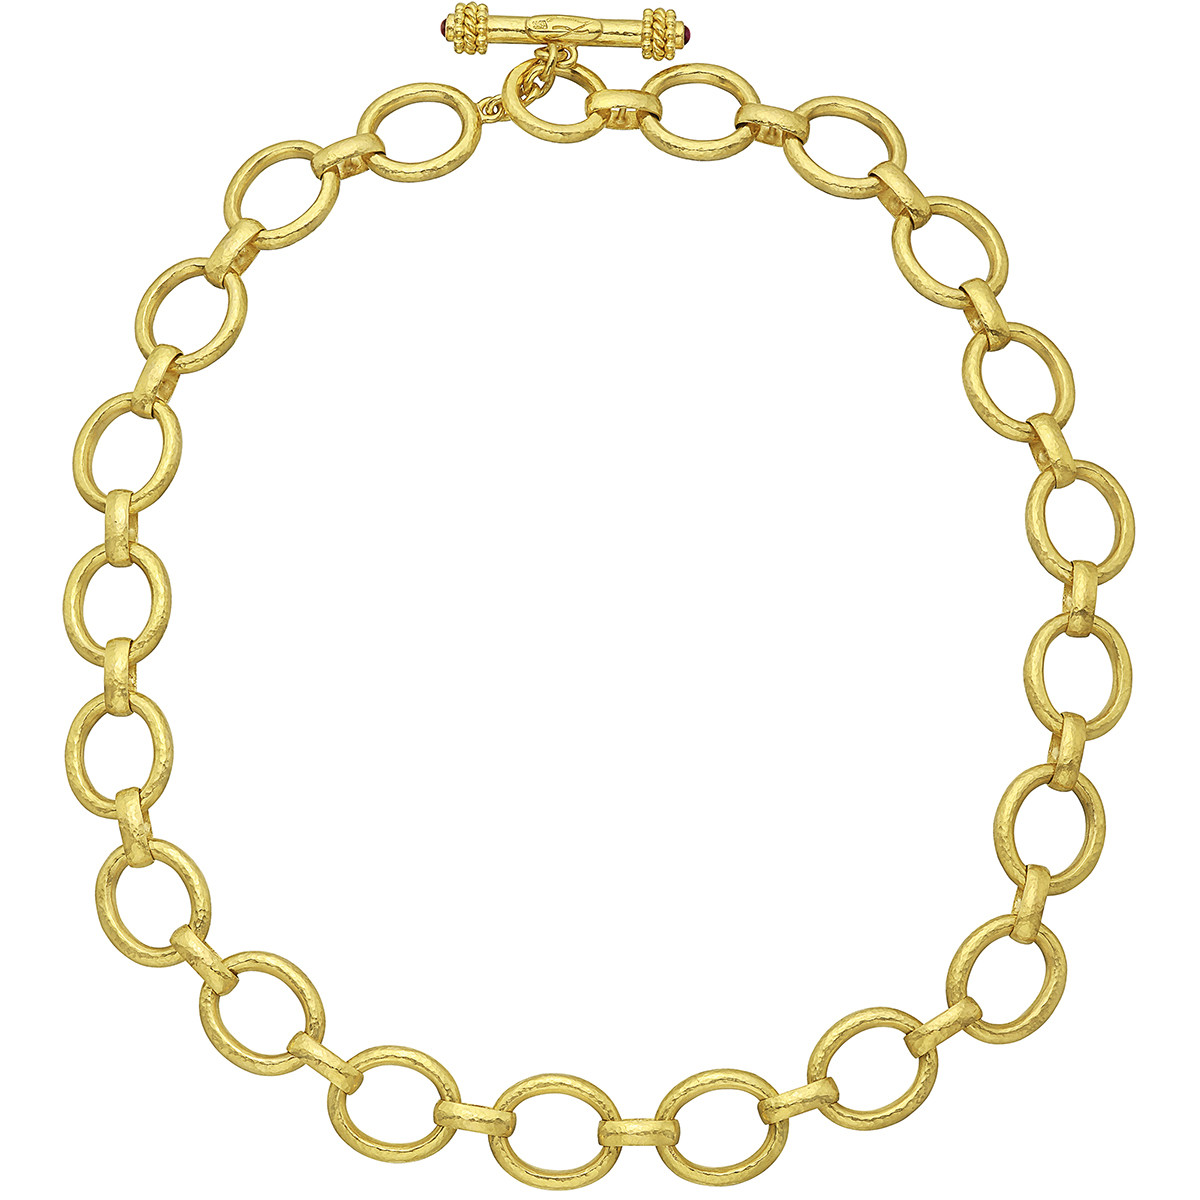 19k Yellow Gold Oval Link Necklace